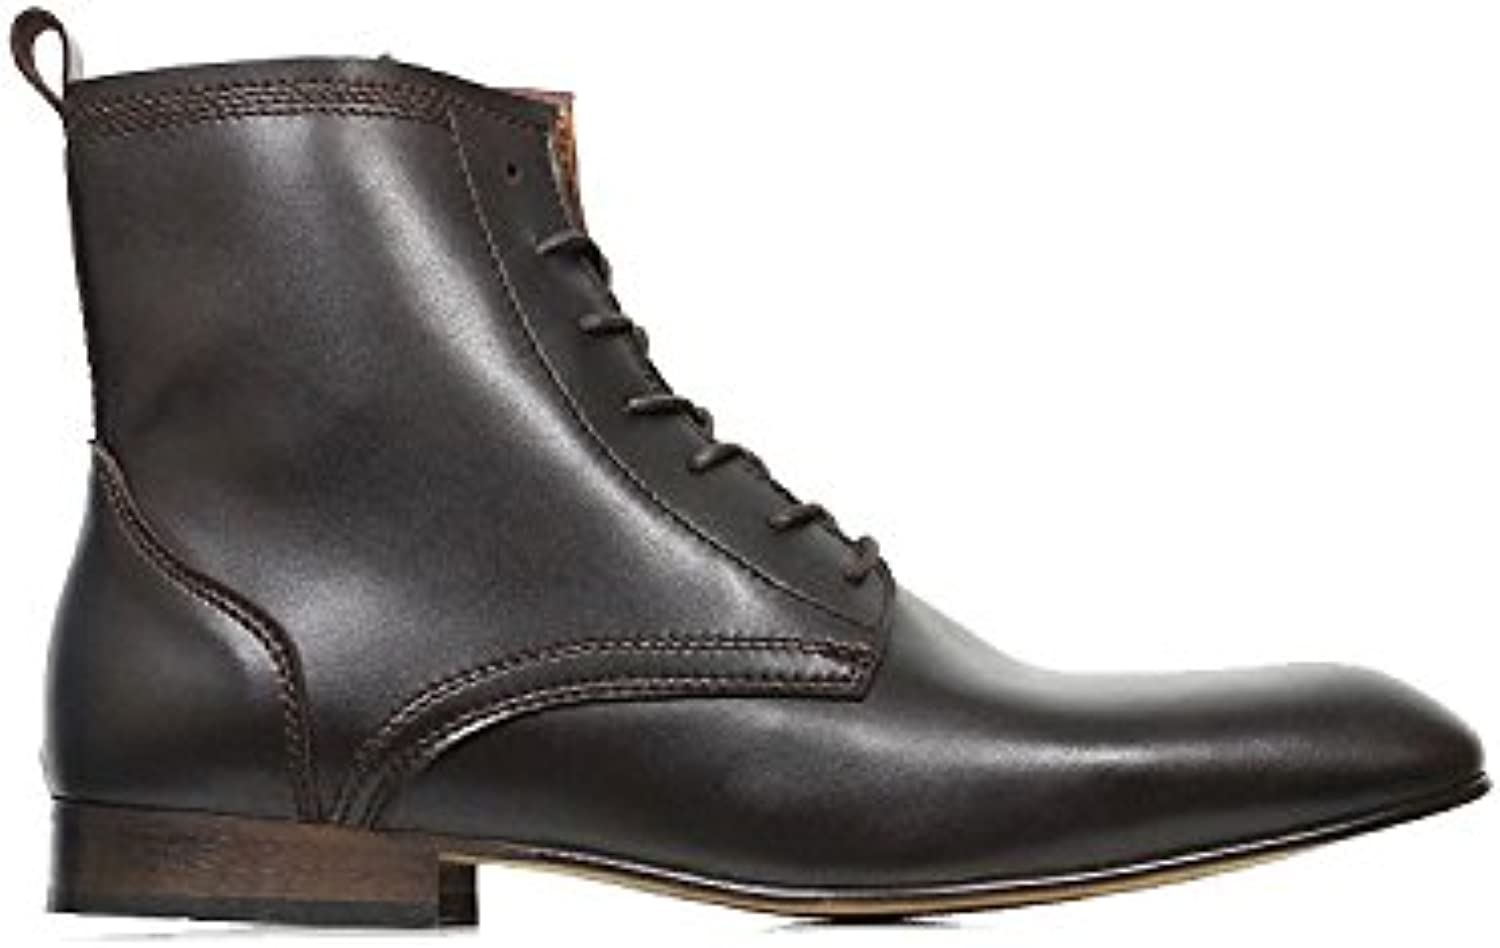 Will's Vegan Shoes SLIM SOLE DRESS BOOTS DARK BROWN